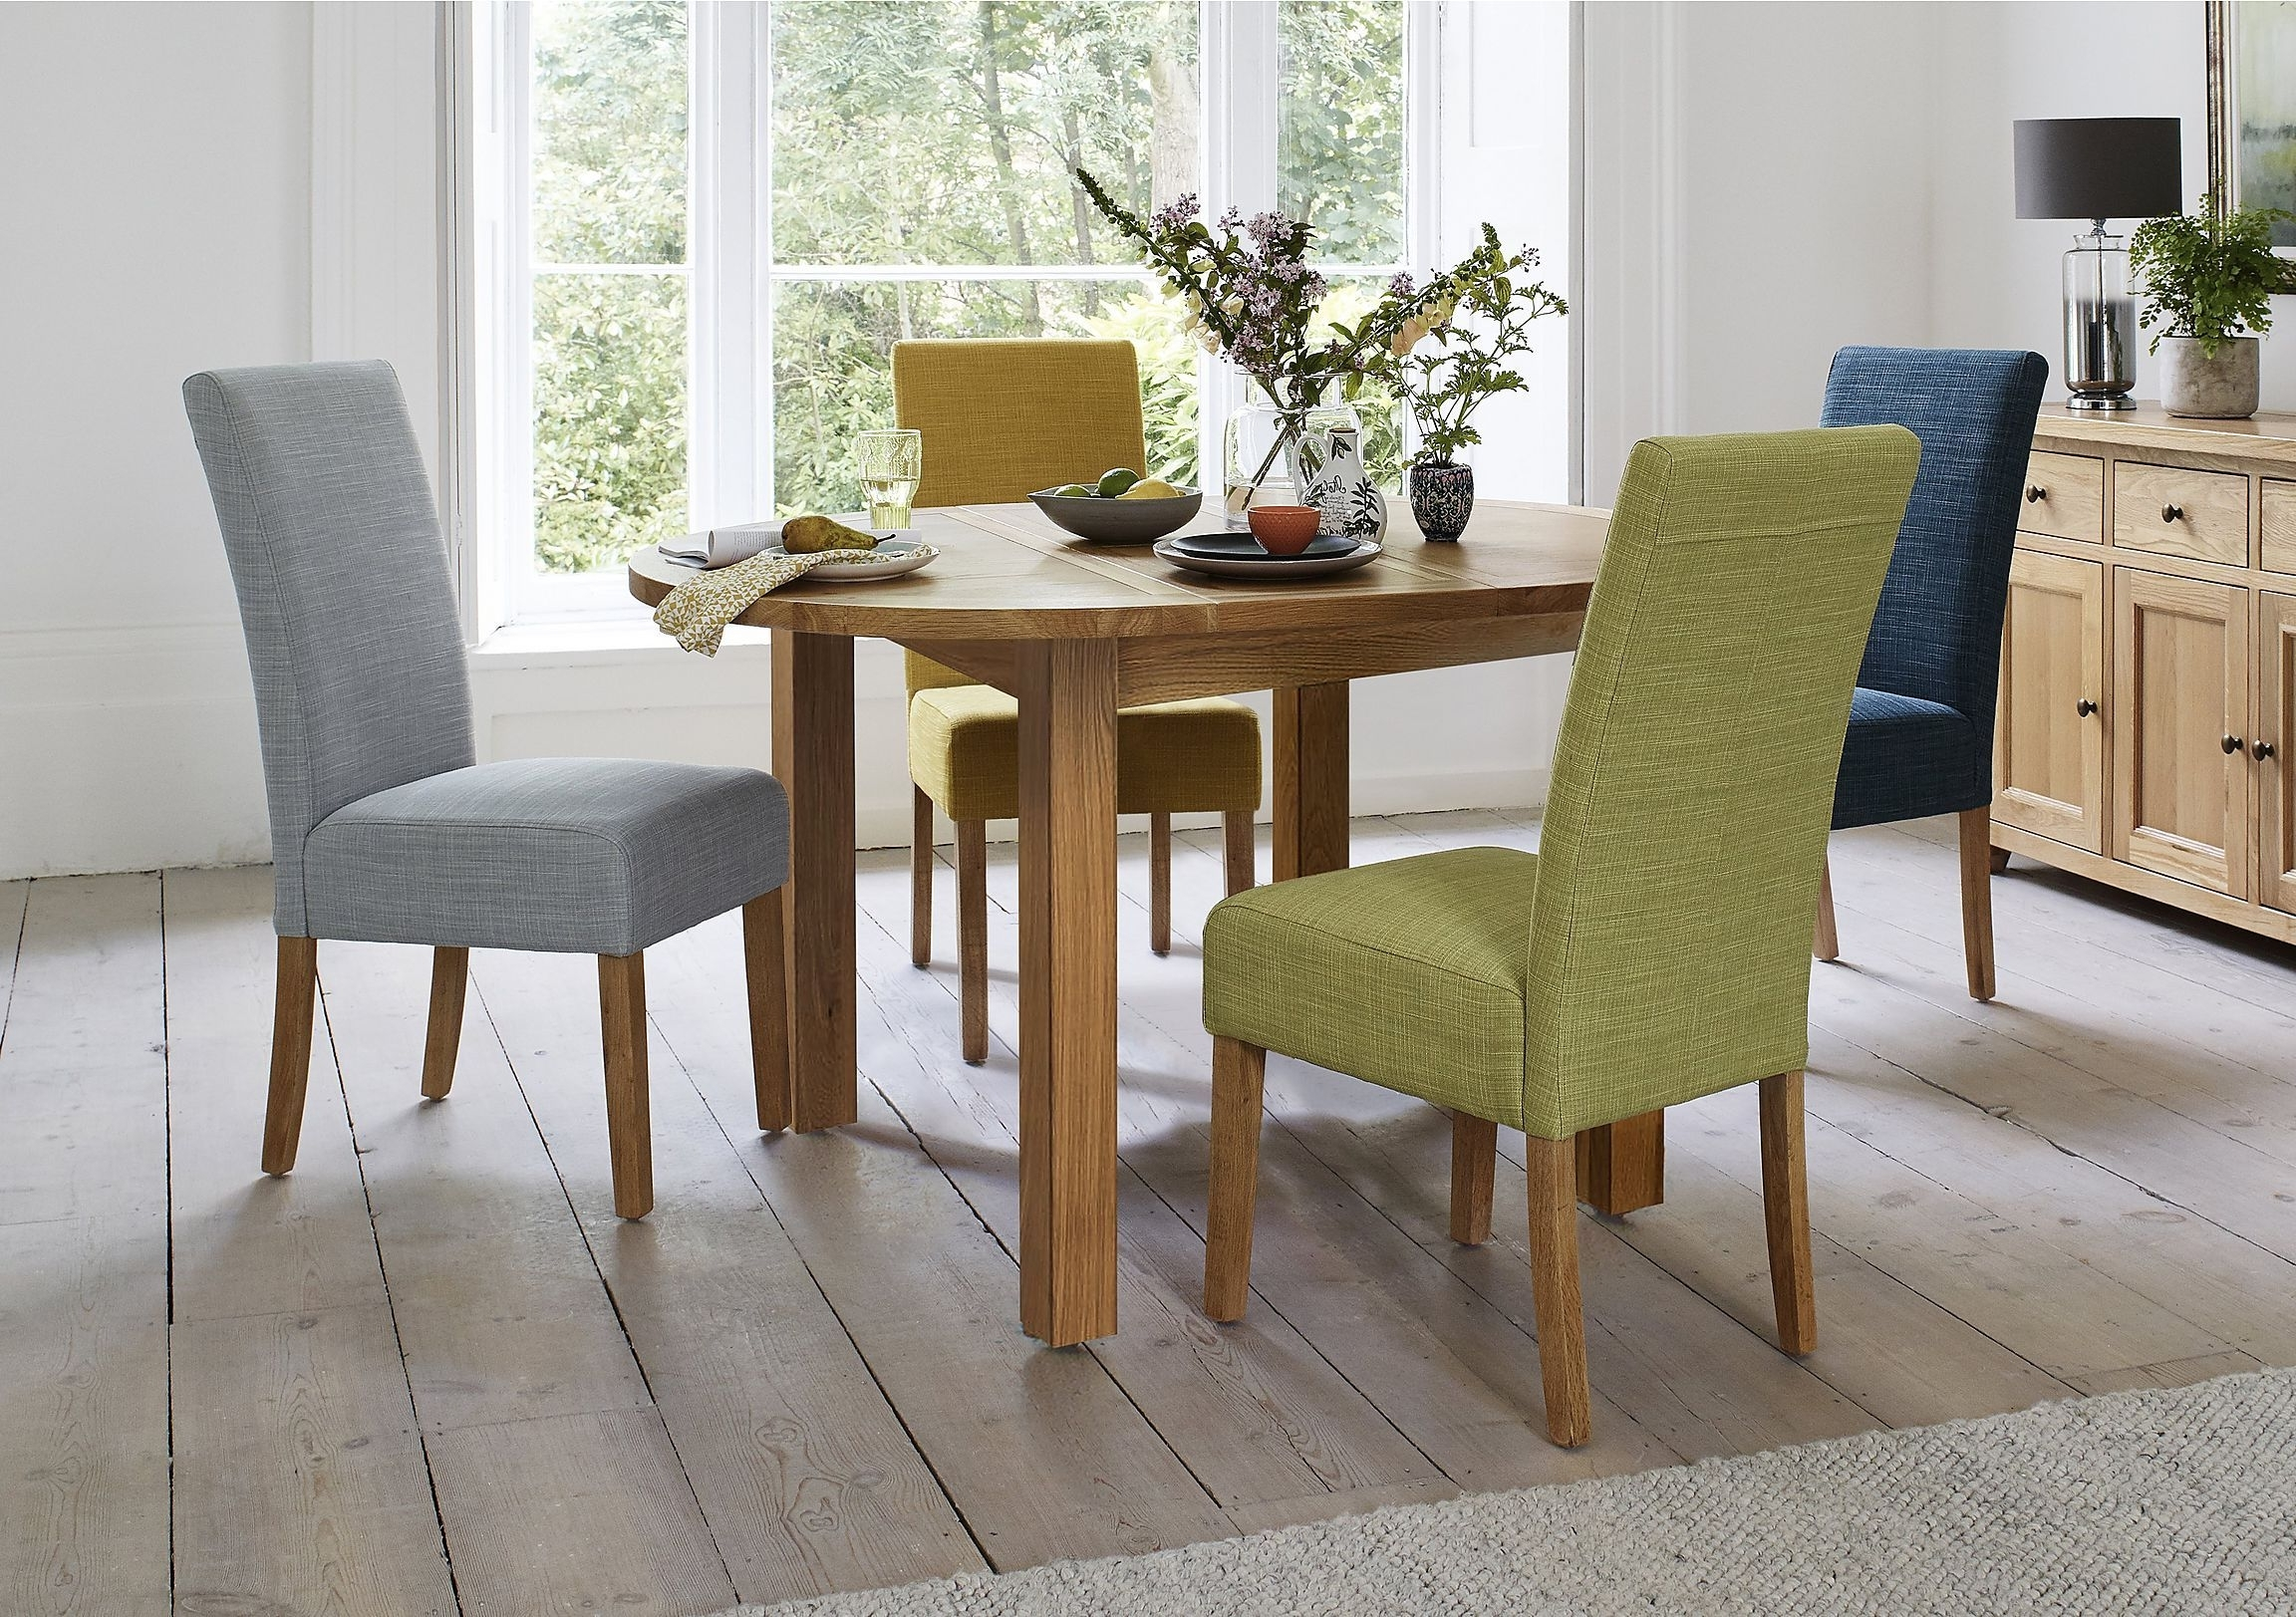 Dining Set Includes 4 Versatile Dining Chairs Upholstered In Fabric With Current Round Oak Dining Tables And 4 Chairs (Gallery 10 of 25)